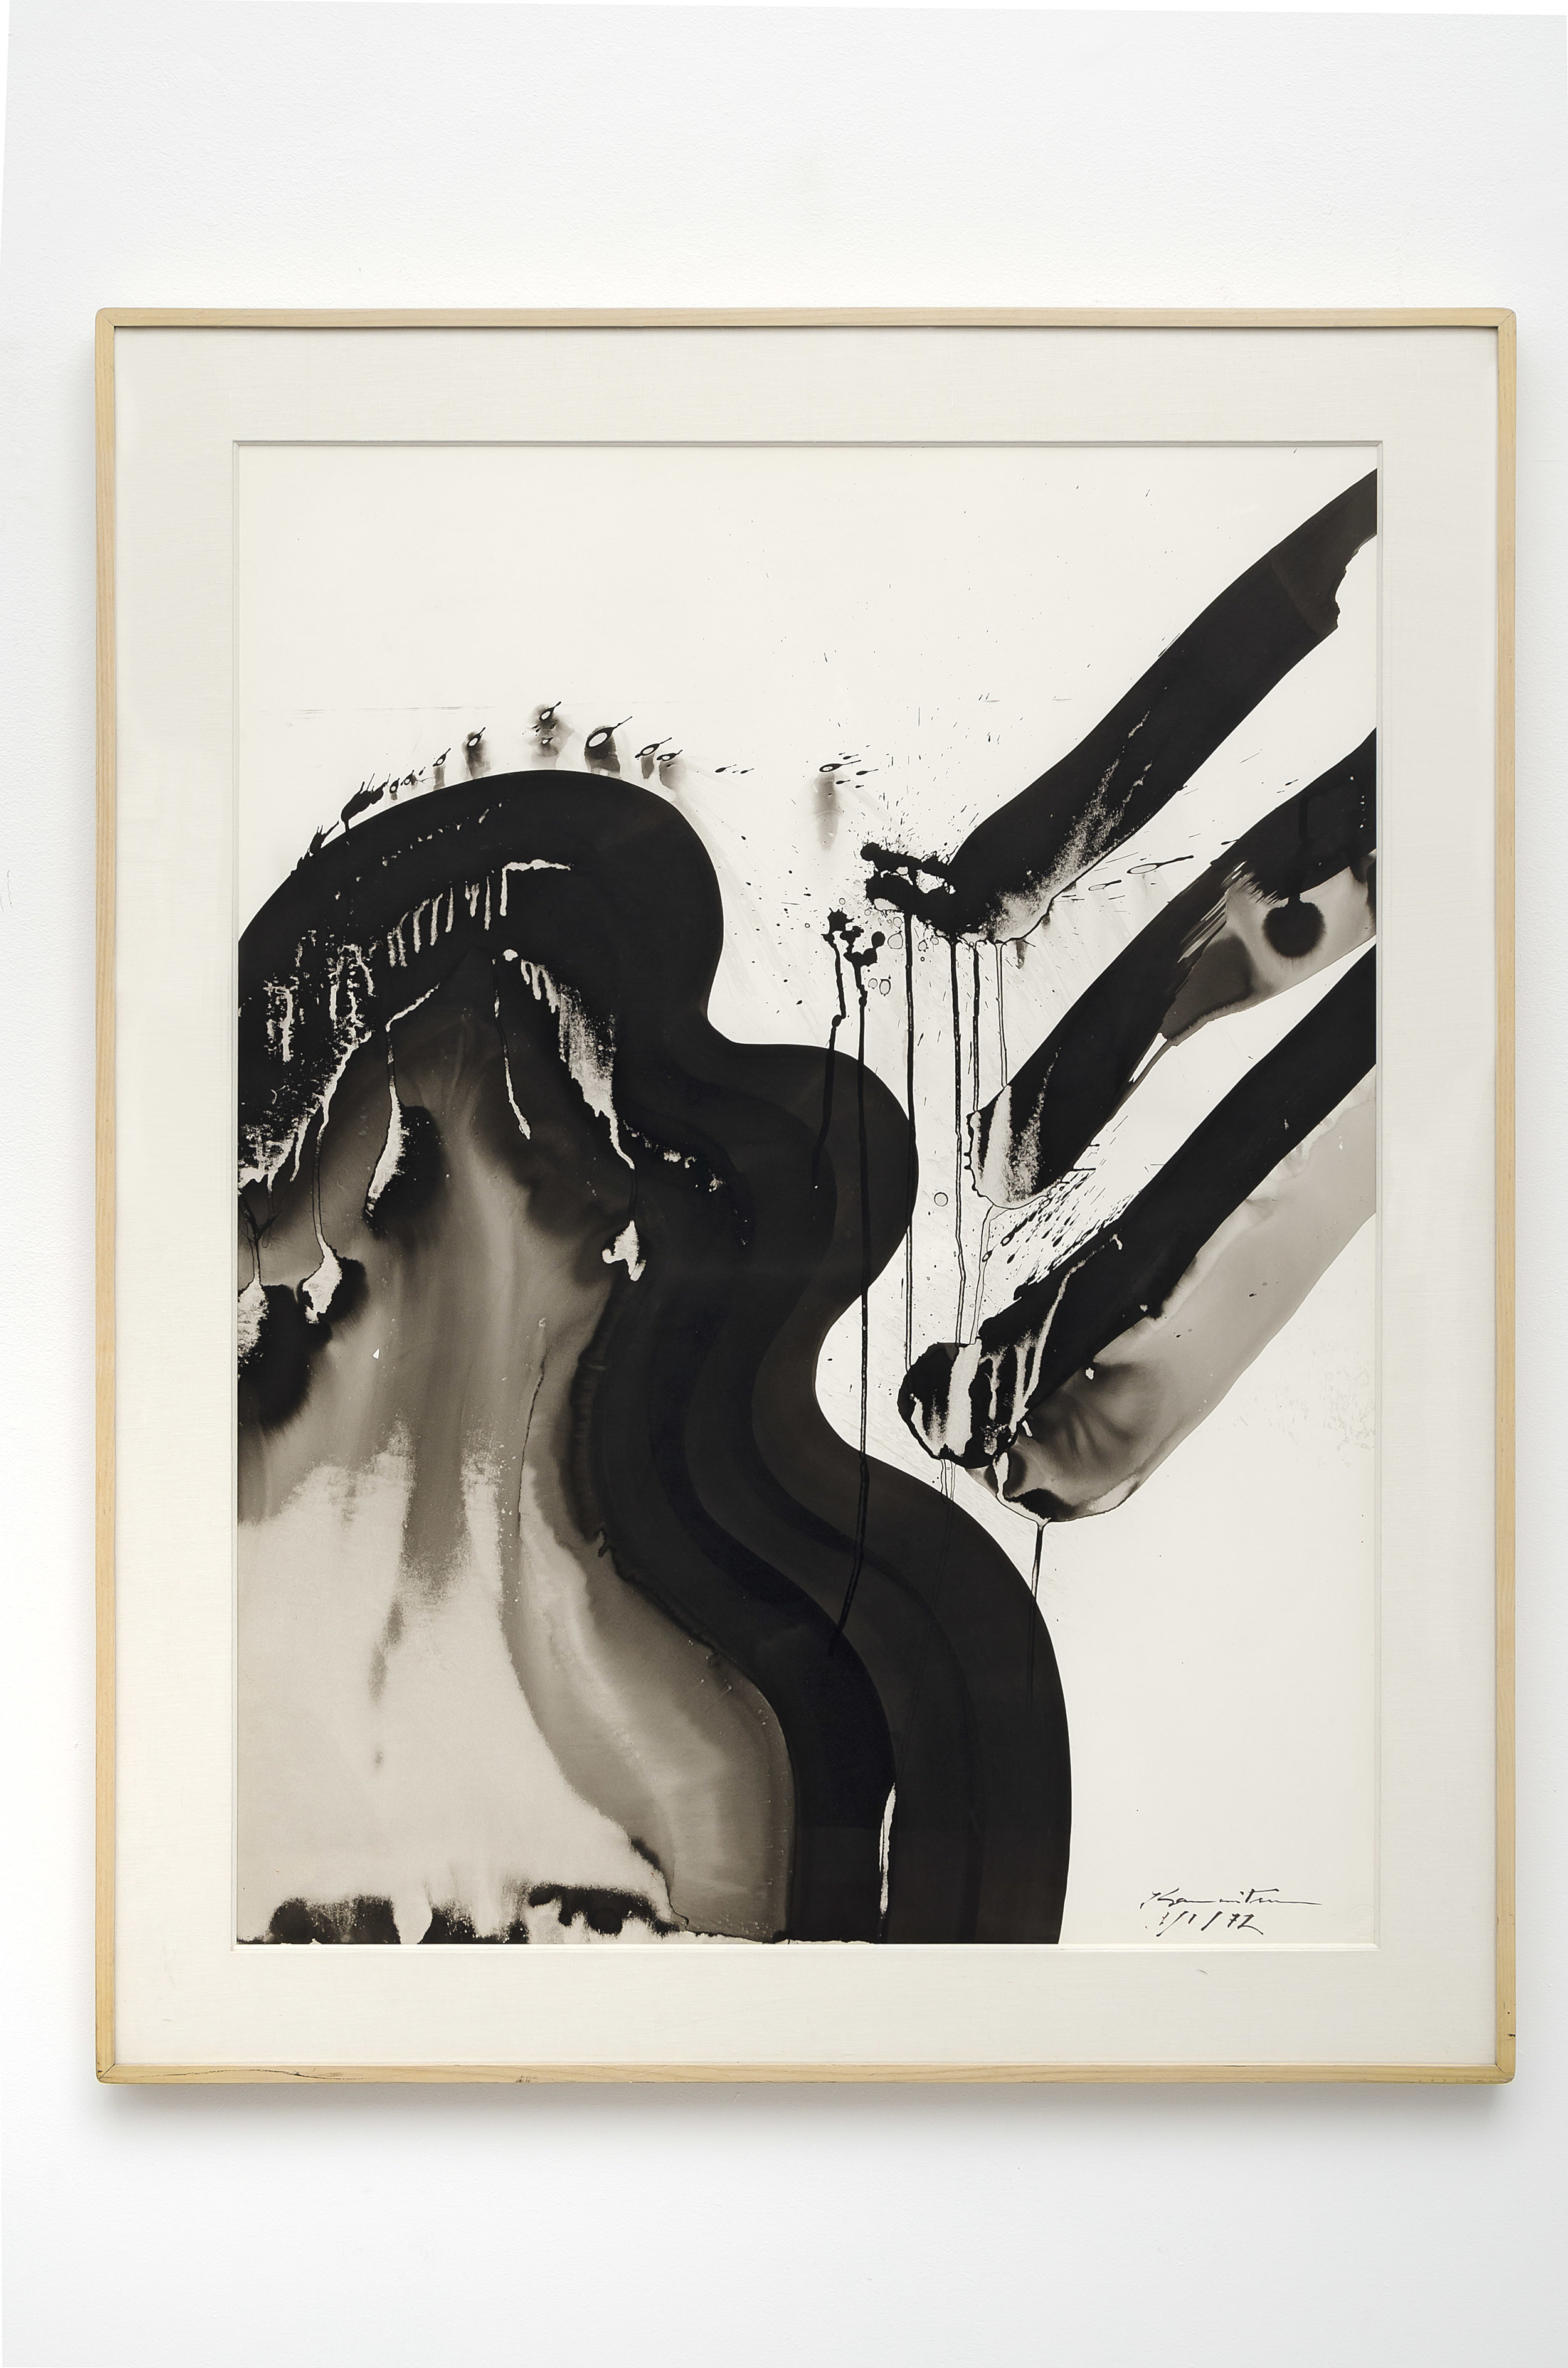 Matsumi Kanemitsu (1922-1992)   Pacific Series - 2 AM , 1972 sumi ink on paper 39 1/4 x 28 7/8 inches; 99.7 x 73.3 centimeters